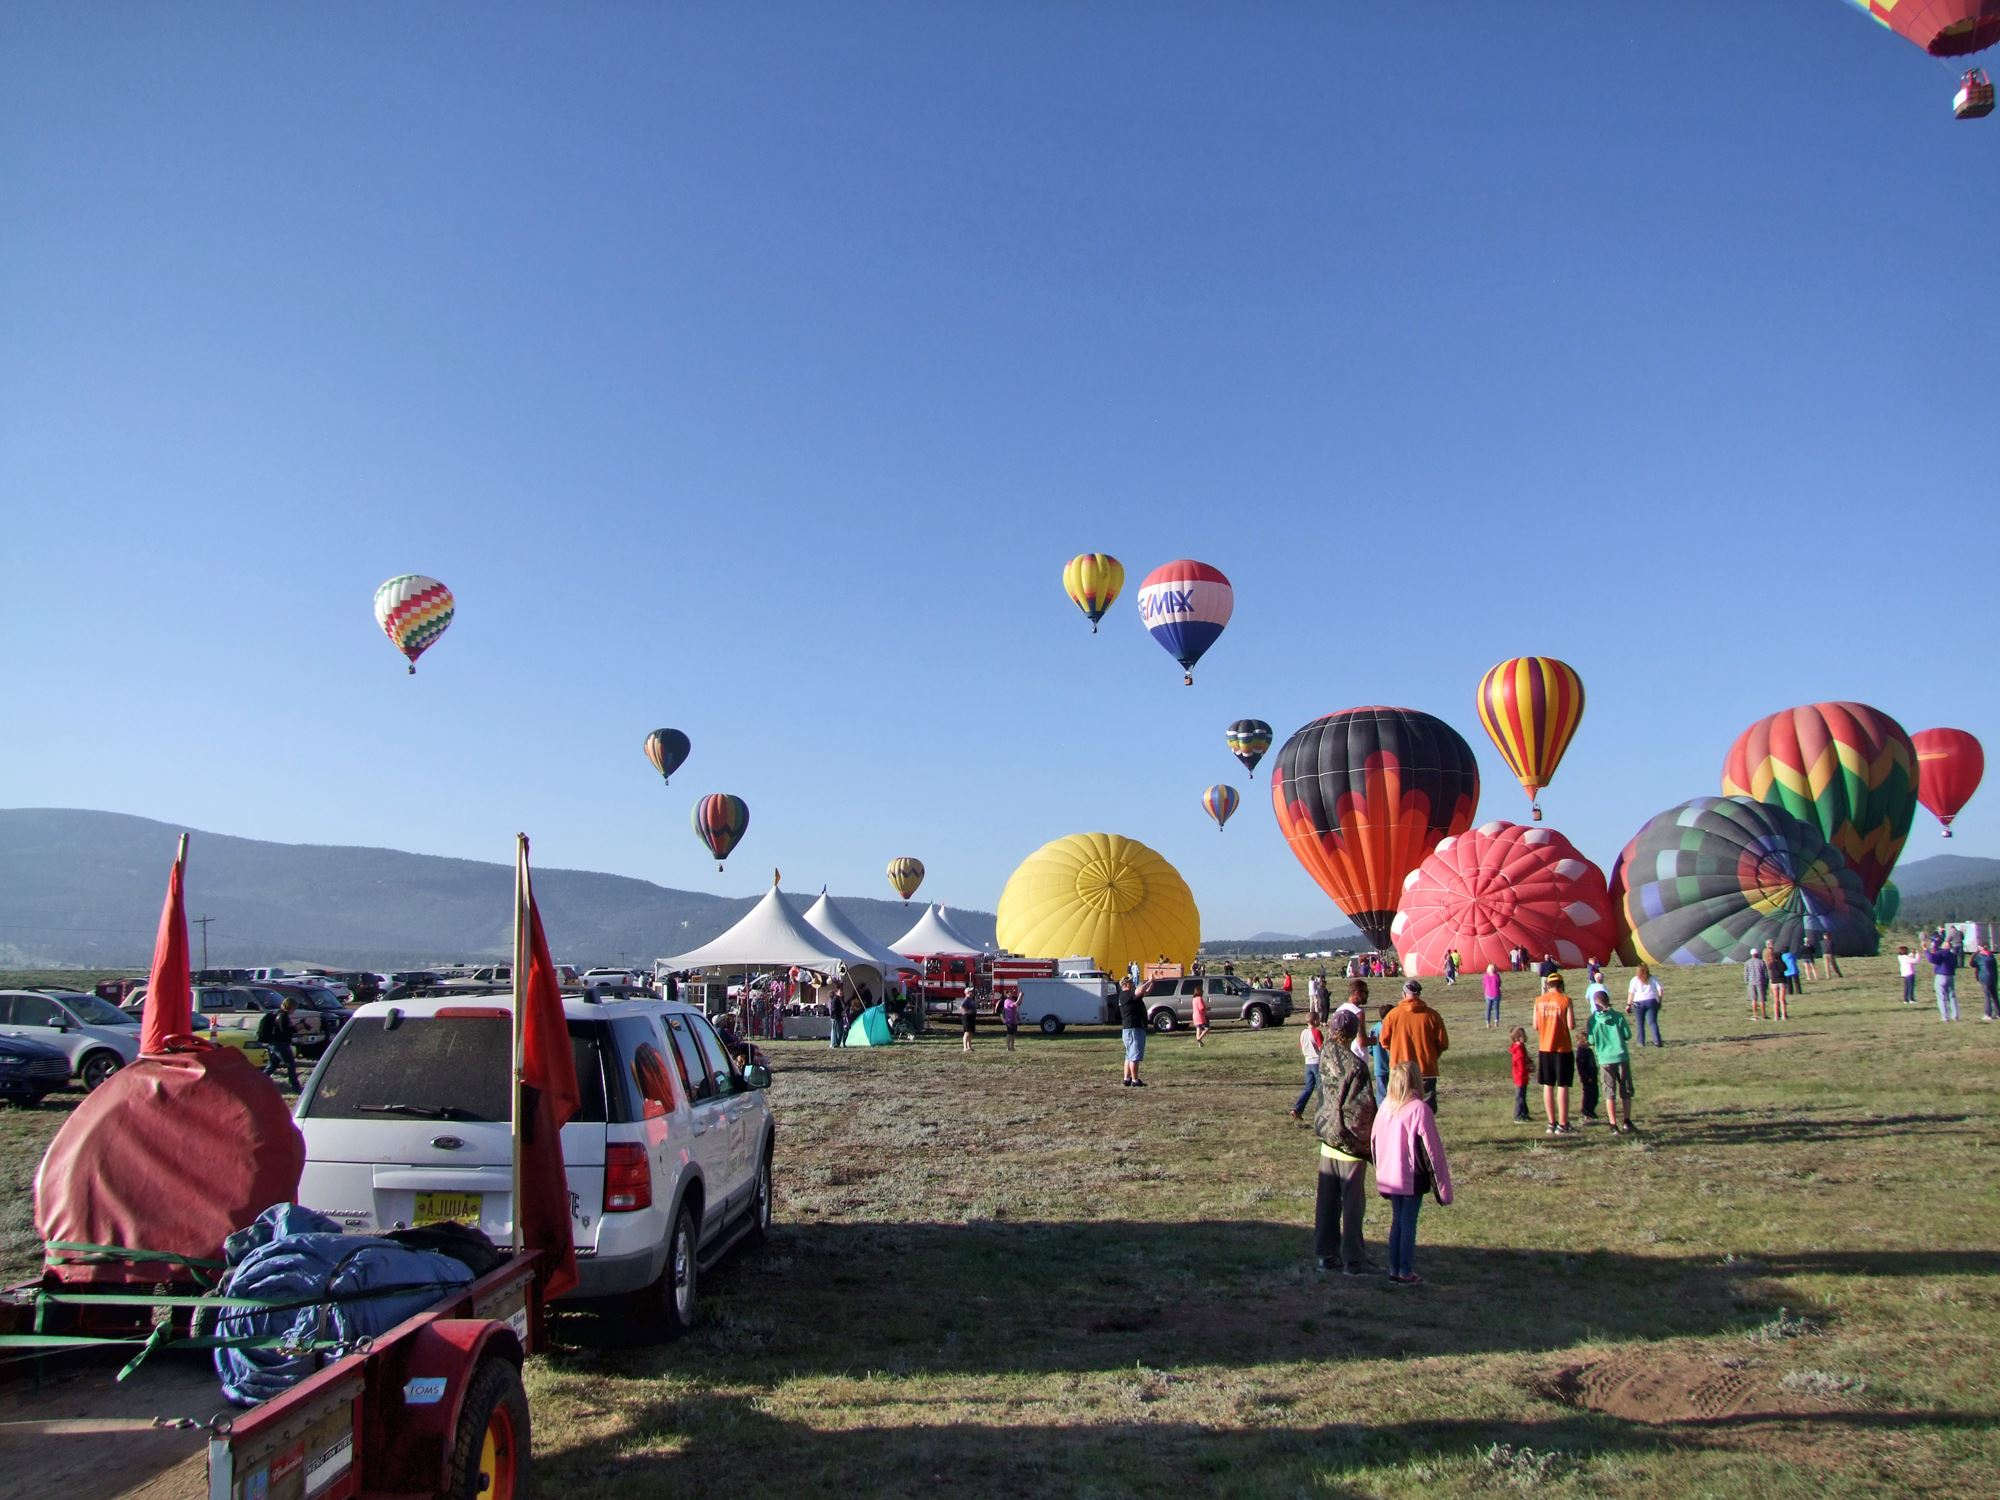 People on the Ground Watching Balloons